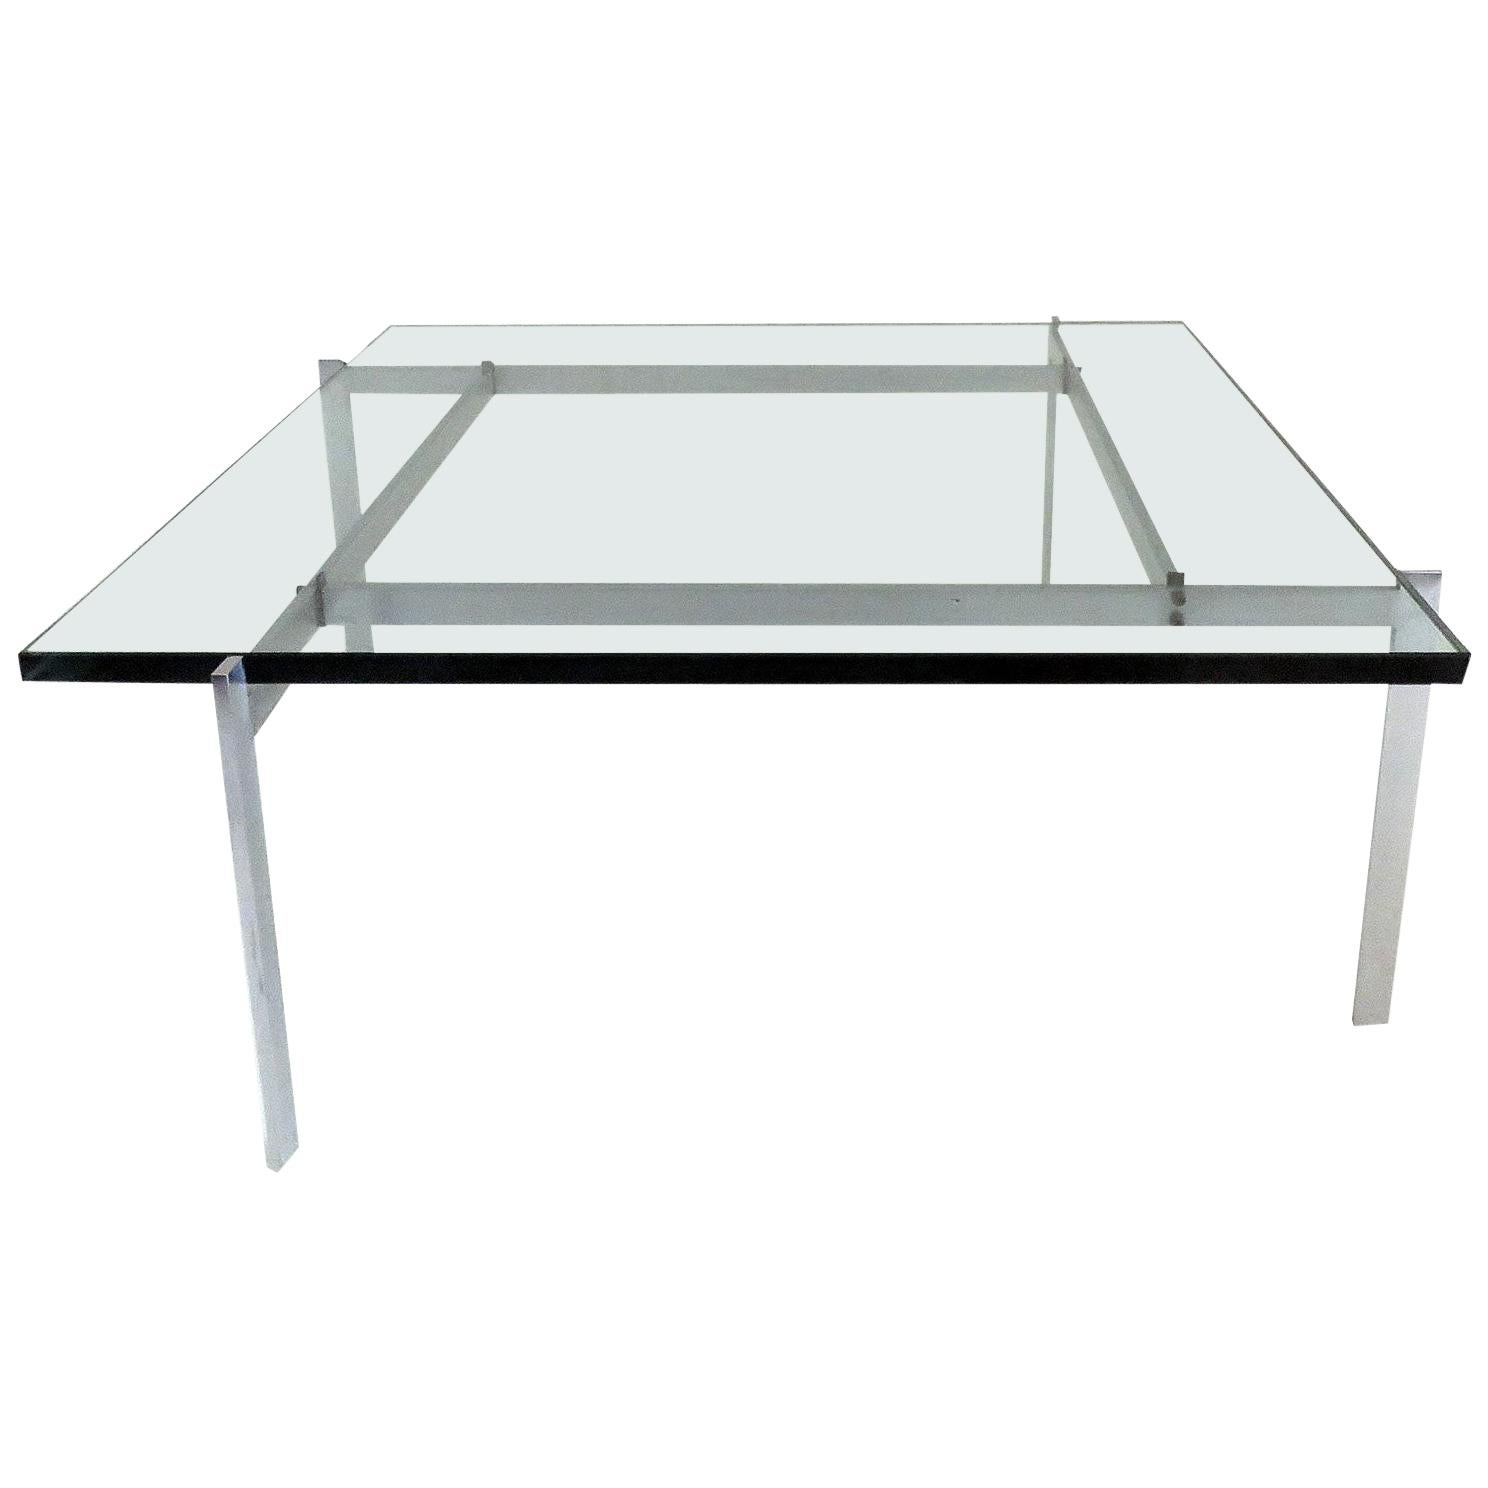 Poul Kjaerholm PK61 for E. Kold Christensen Coffee Table, 1969